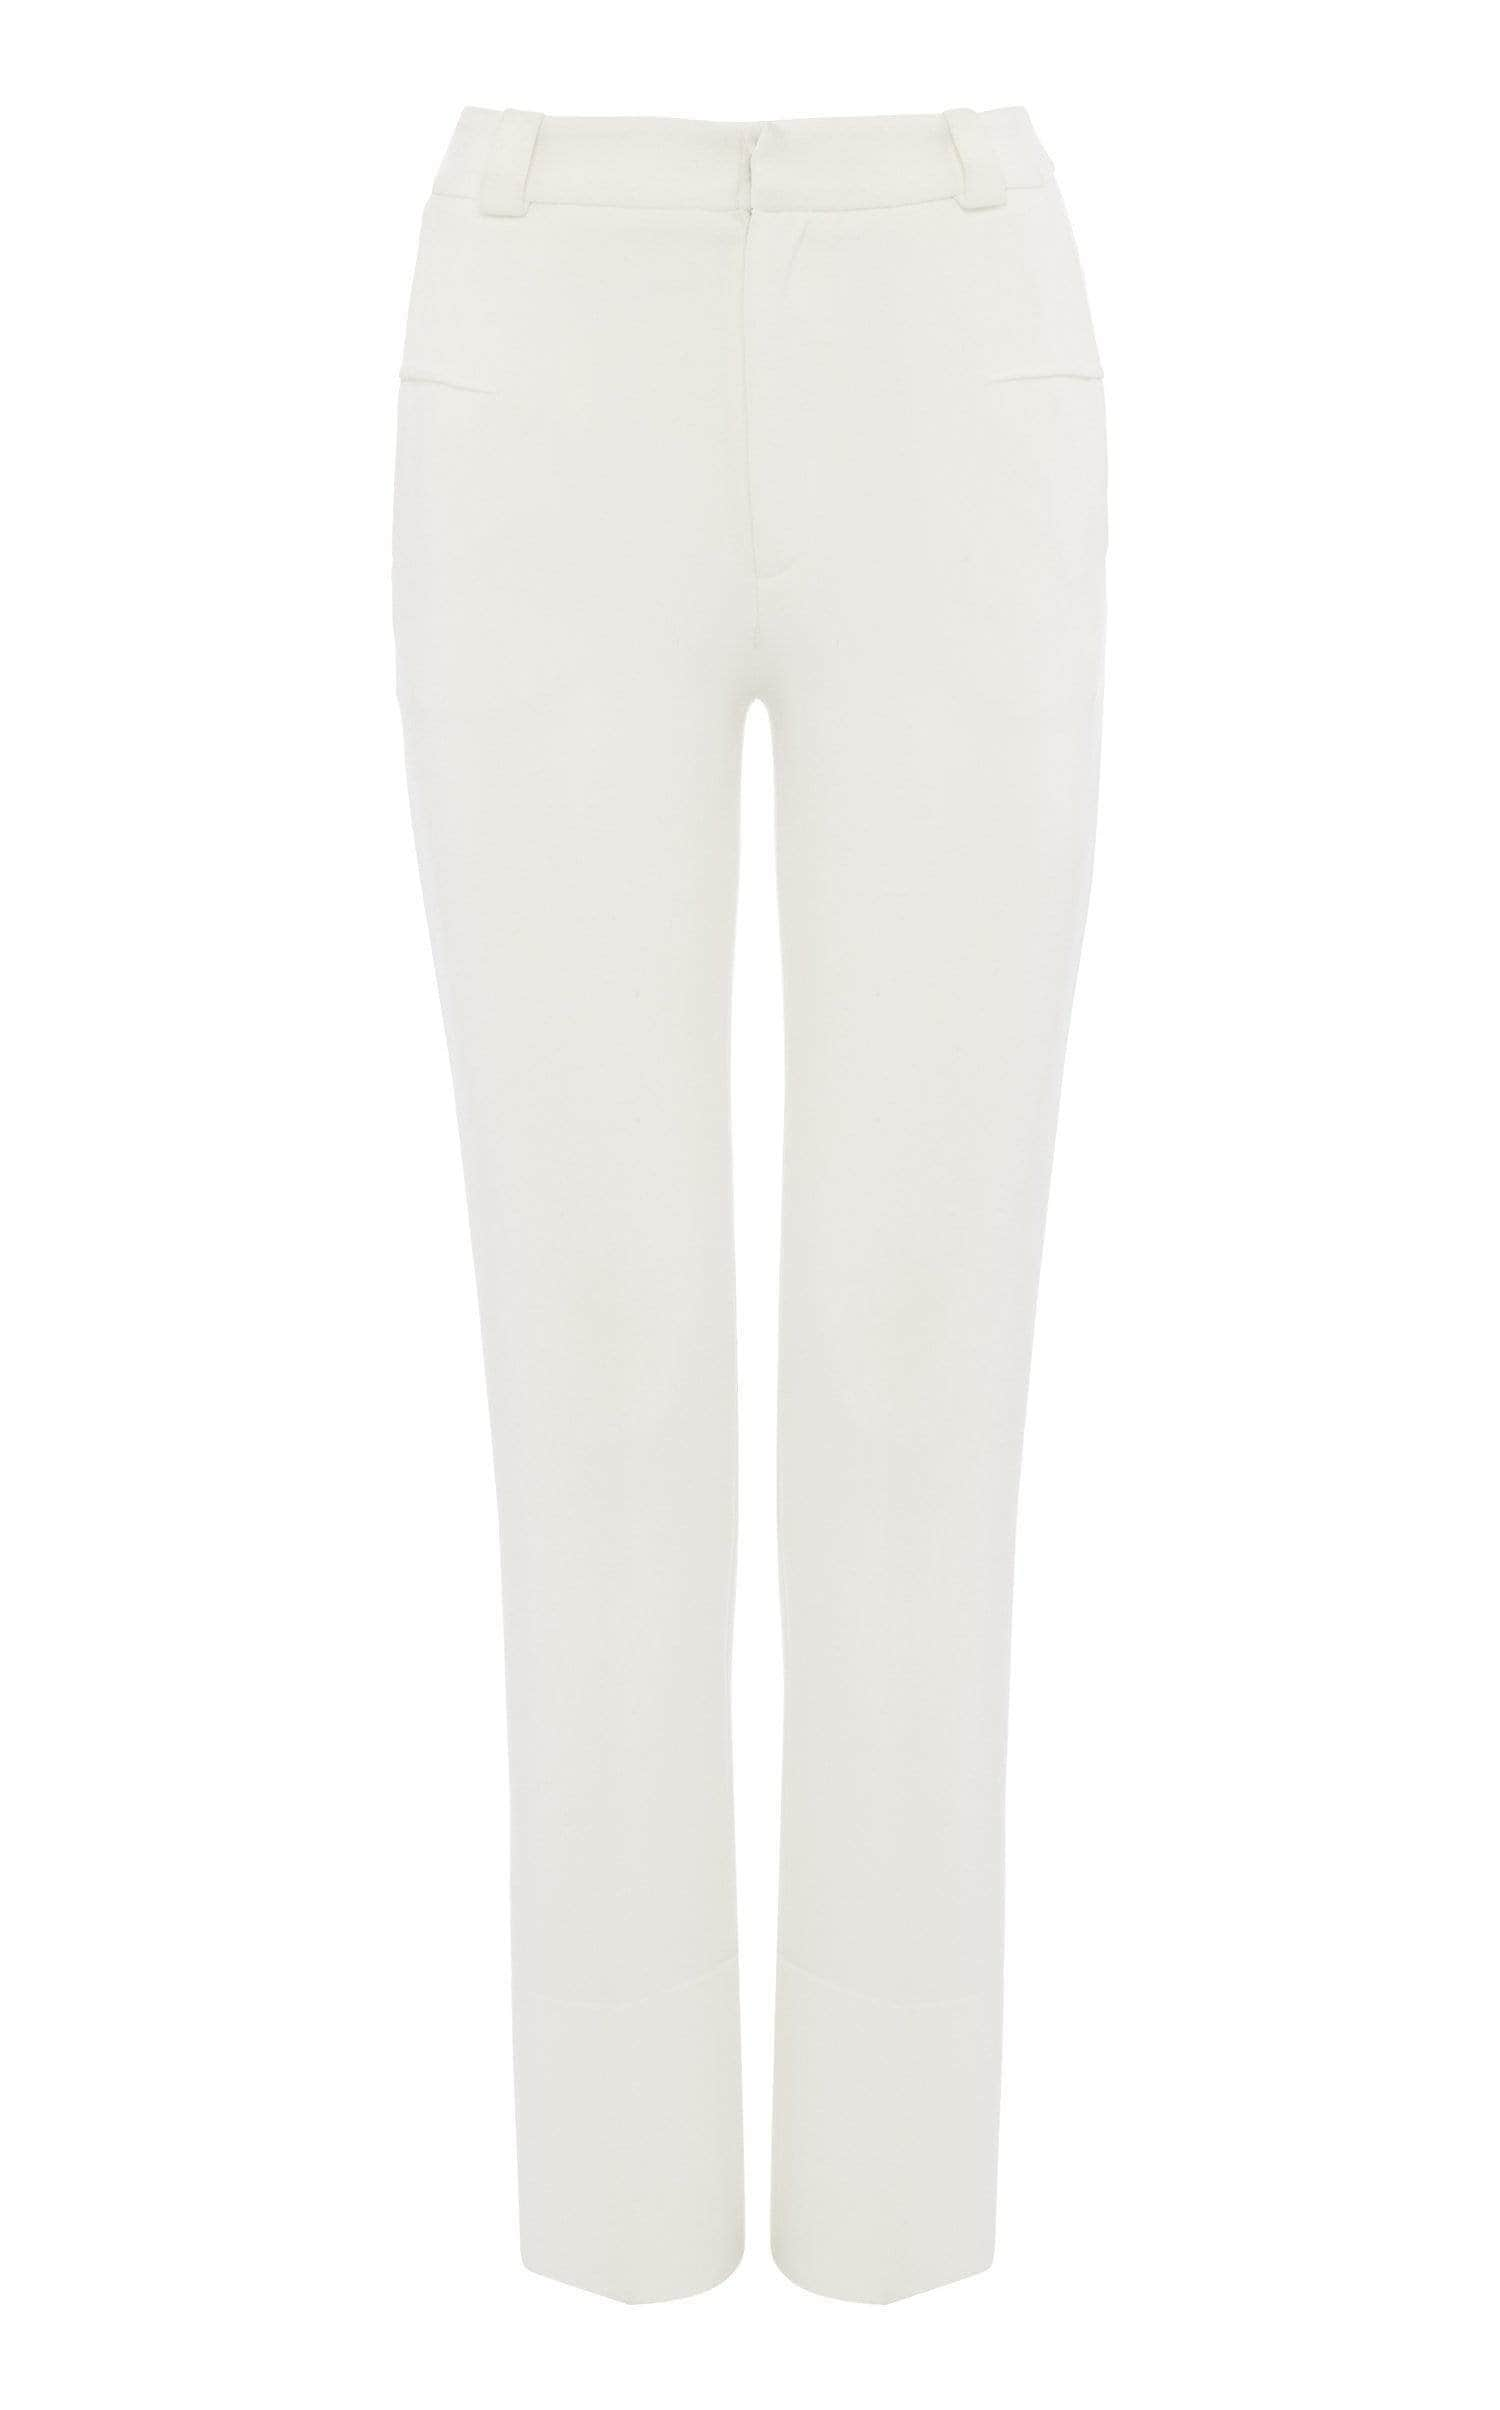 Lacerta Trouser In White from Roland Mouret